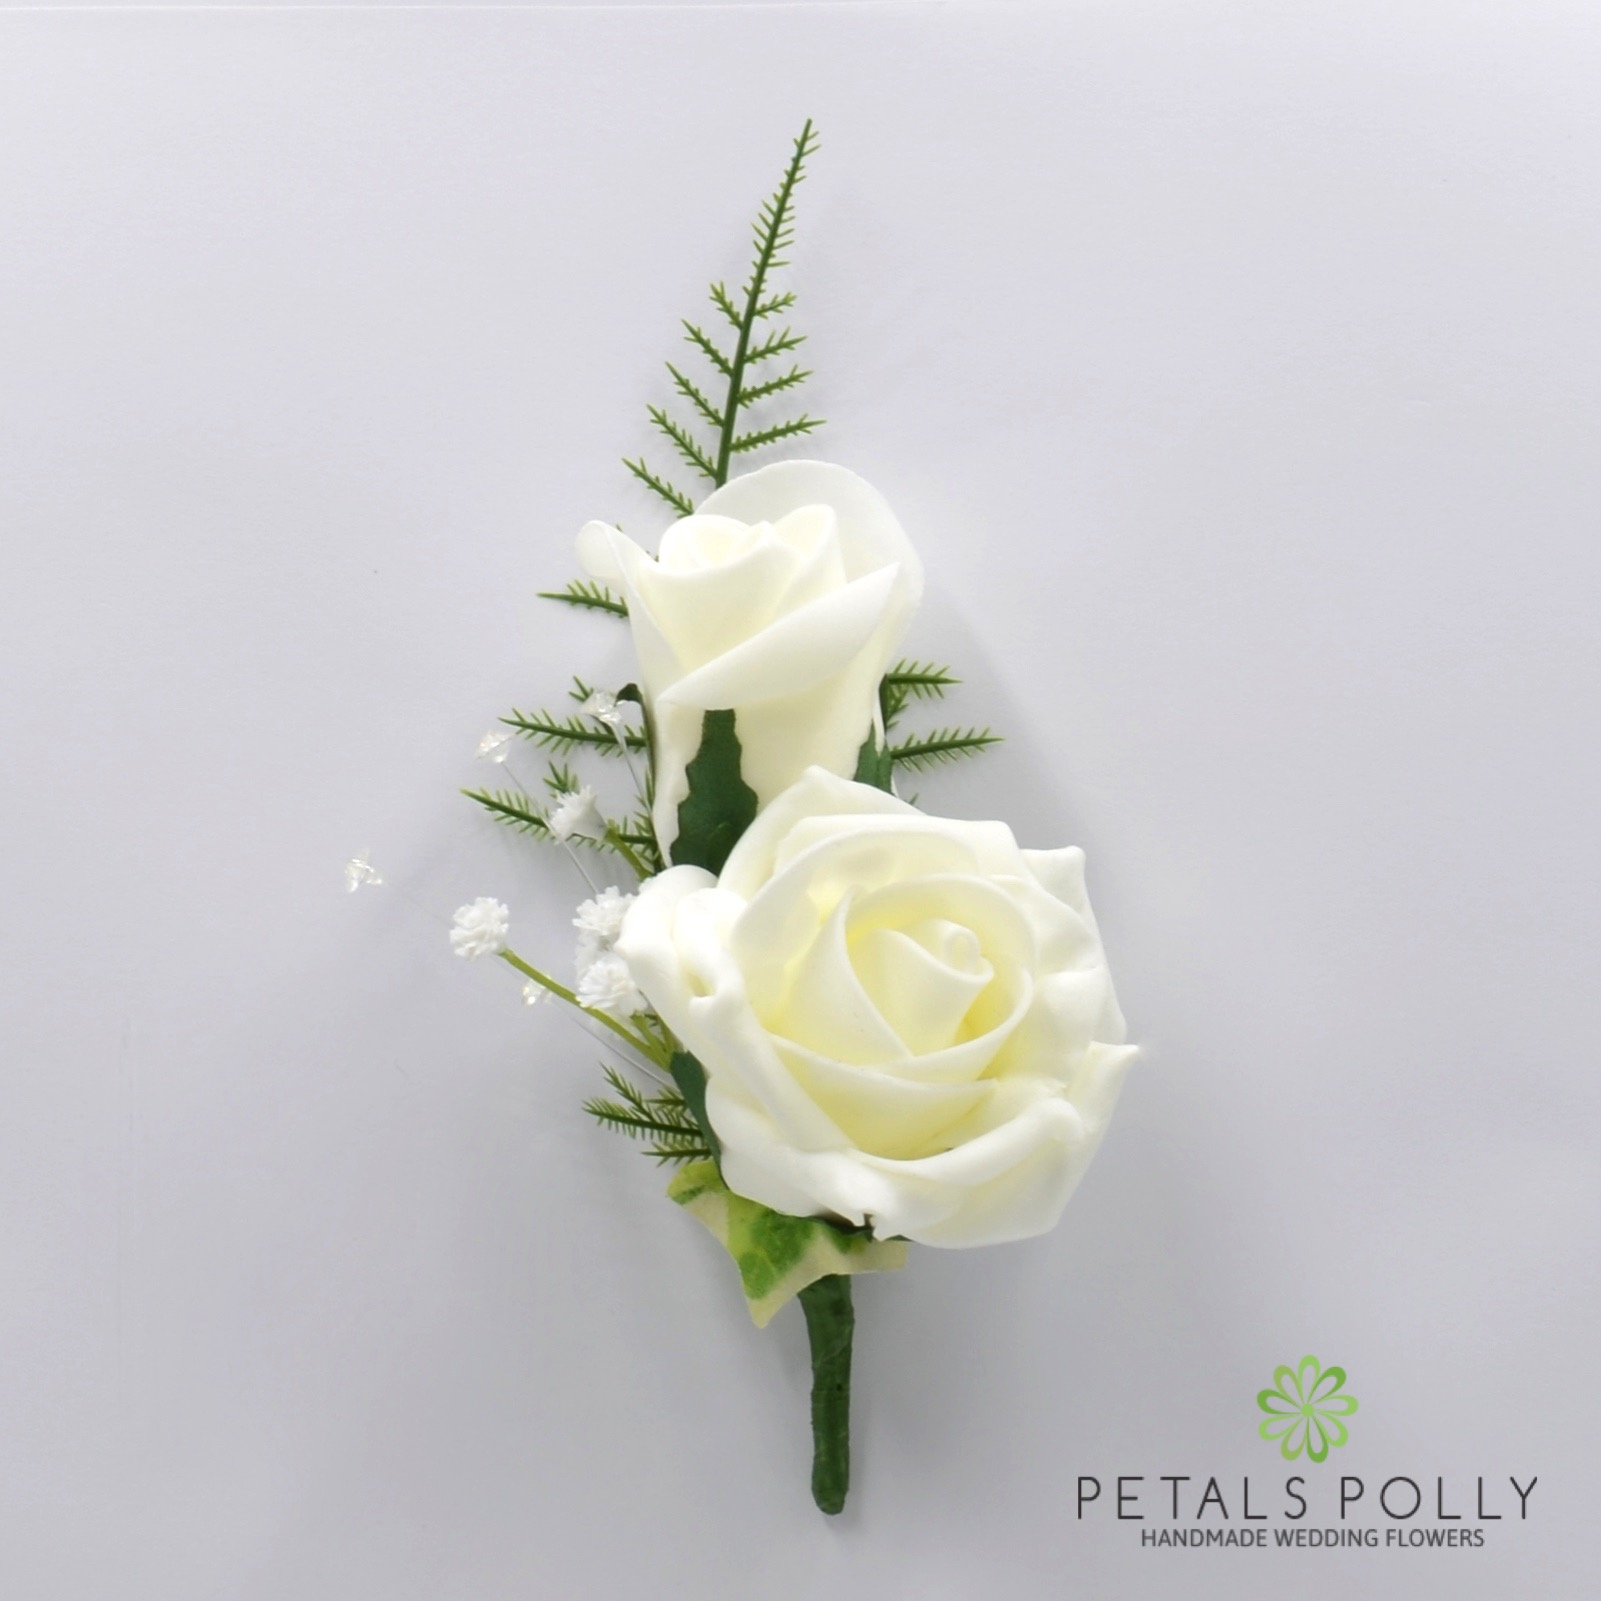 Artificial Wedding Flowers Hand Made By Petals Polly Foam Rose